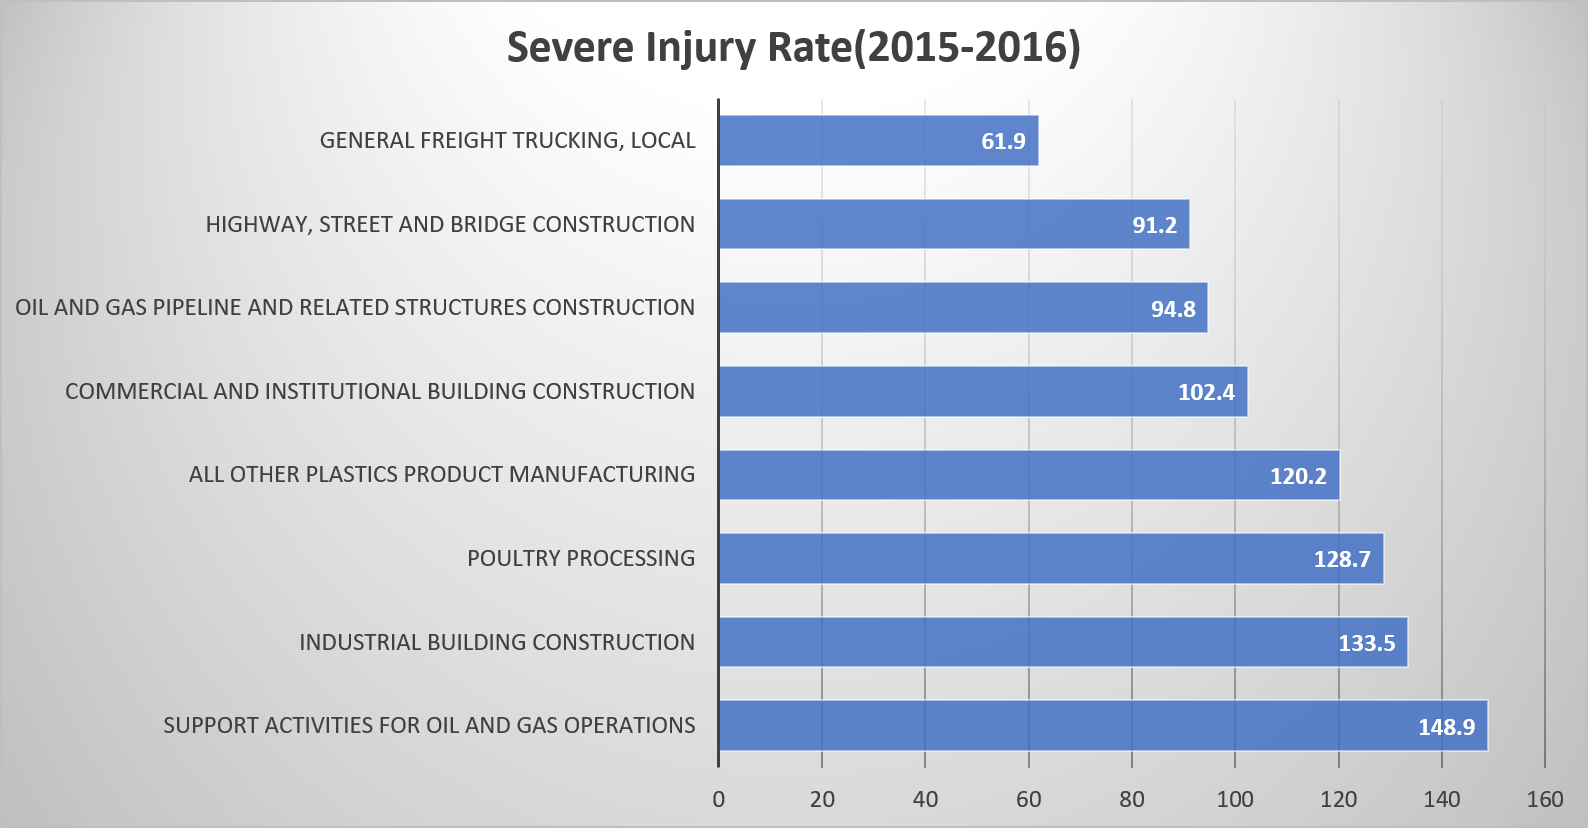 Severe Injury Rate